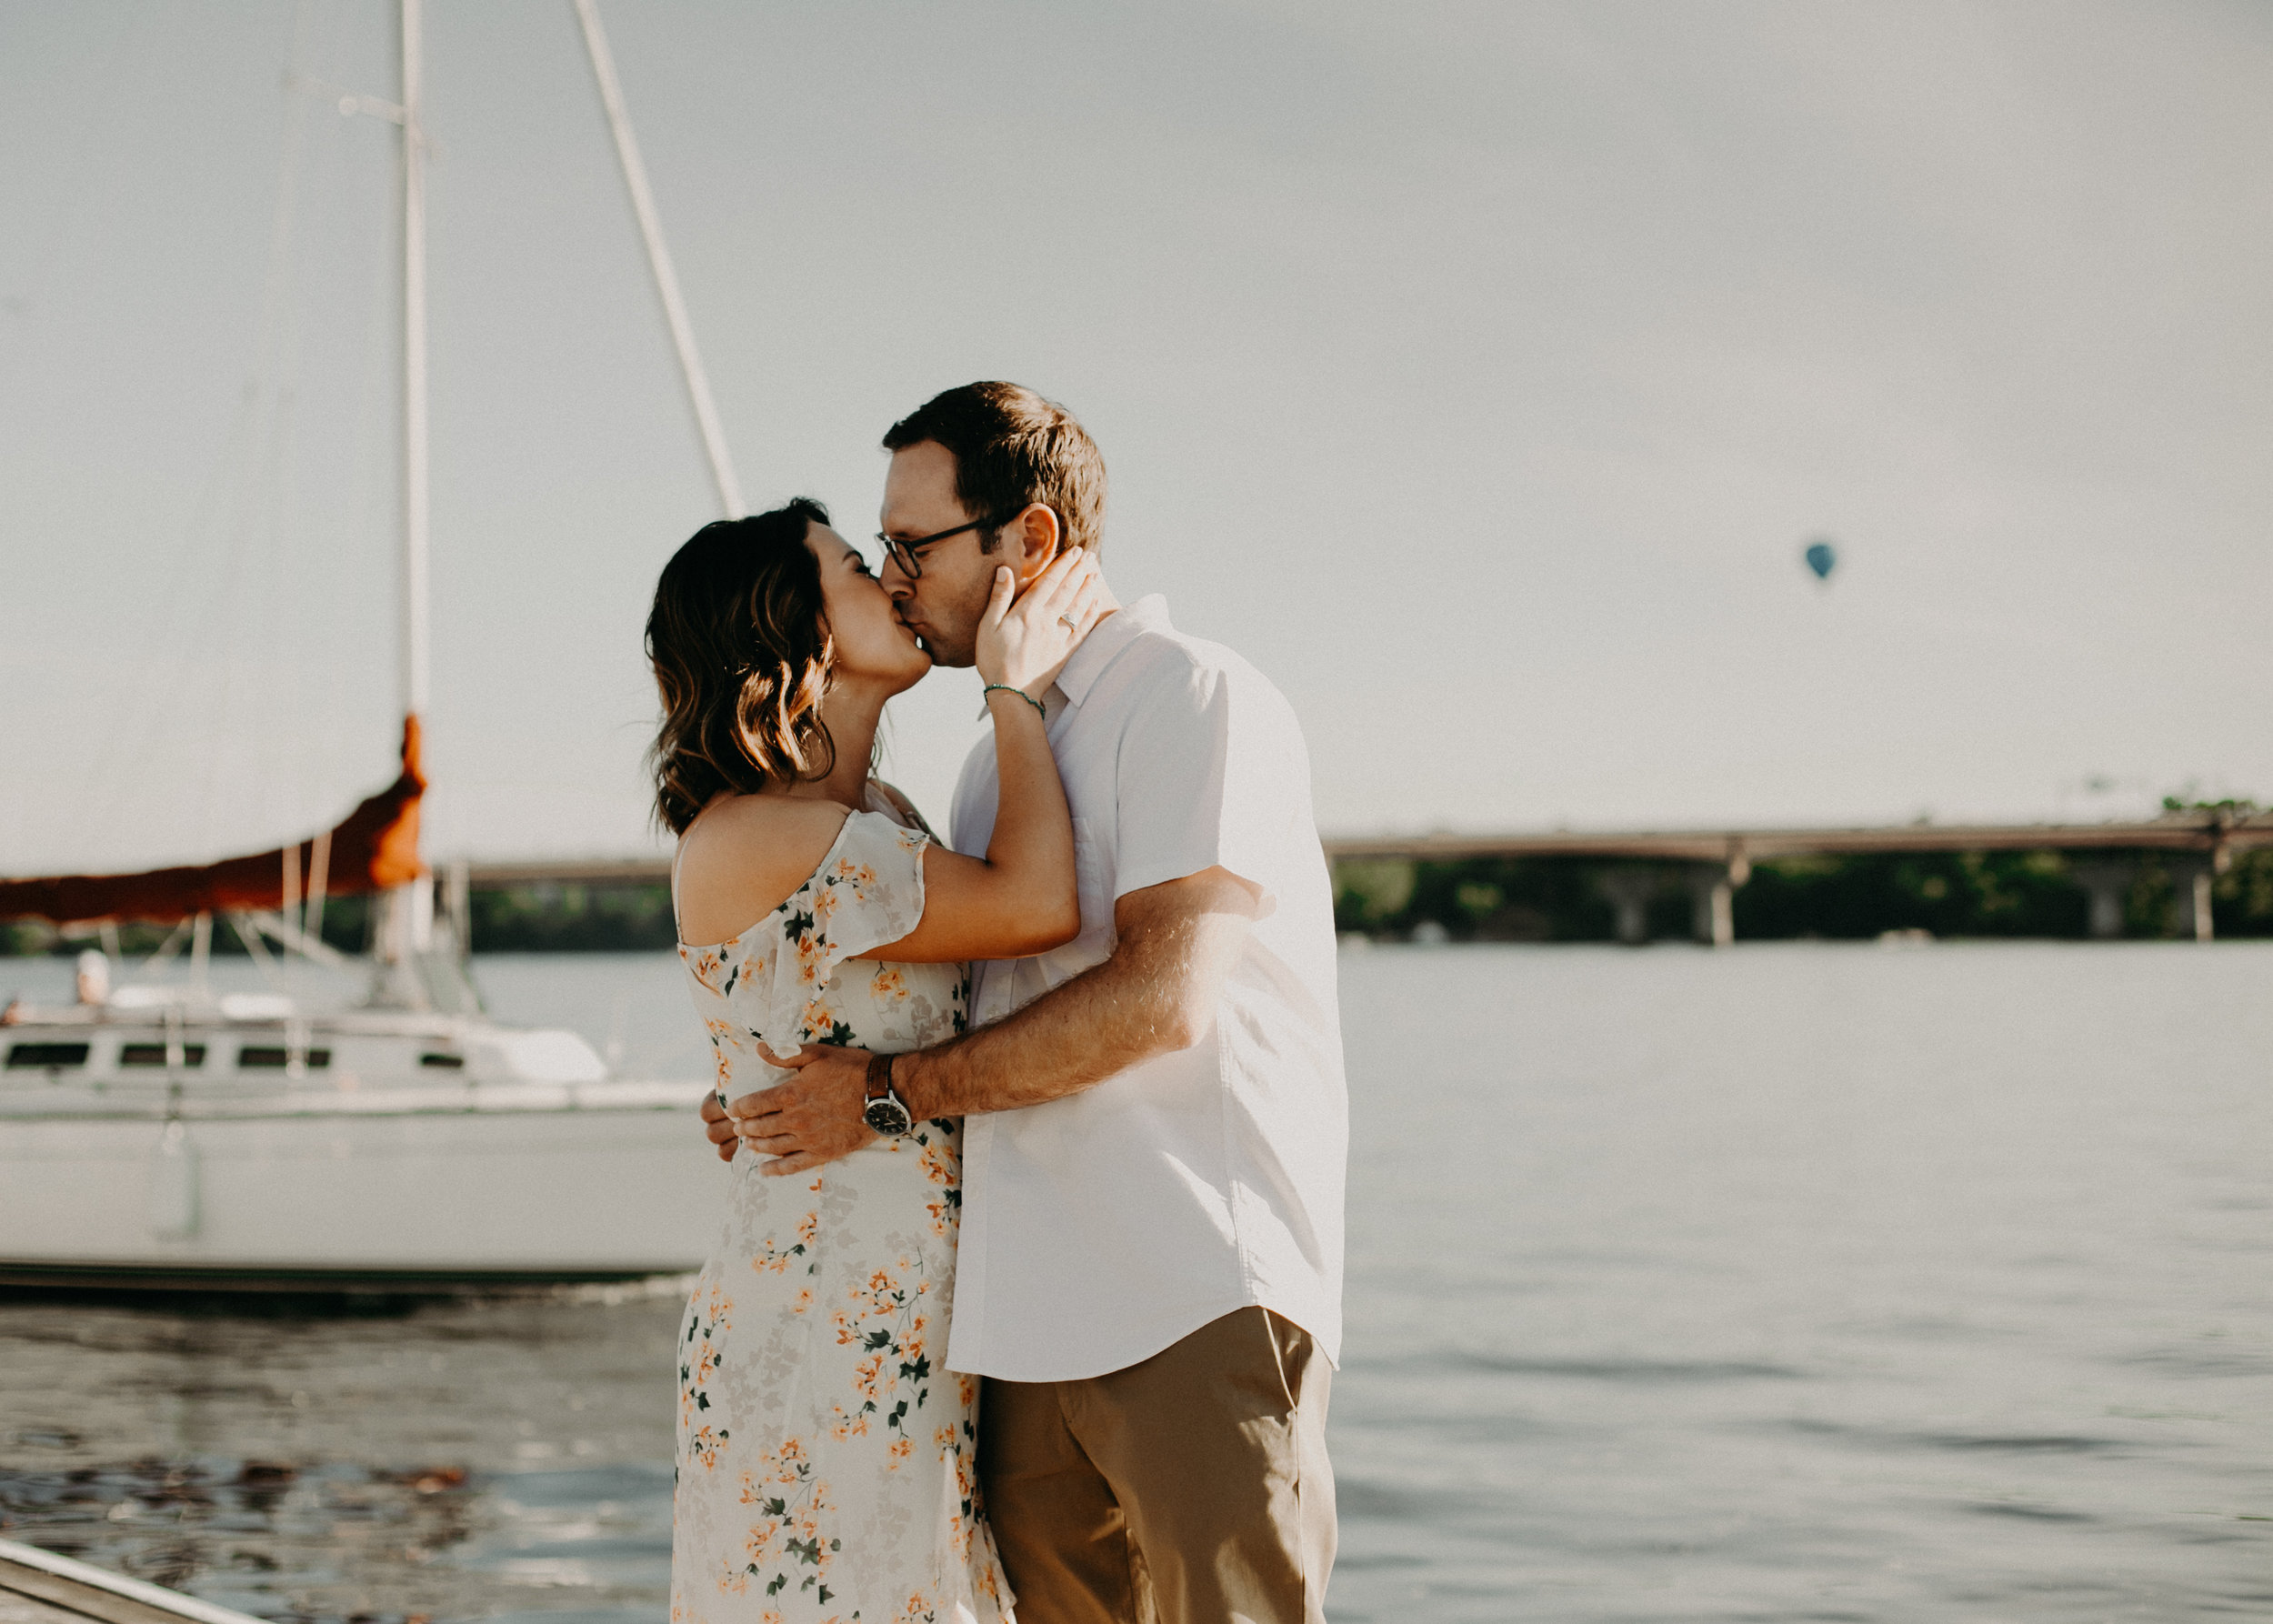 Andrea Wagner Photography captures real and intimate moments between an engaged couple in Hudson WI at the St Croix Marina